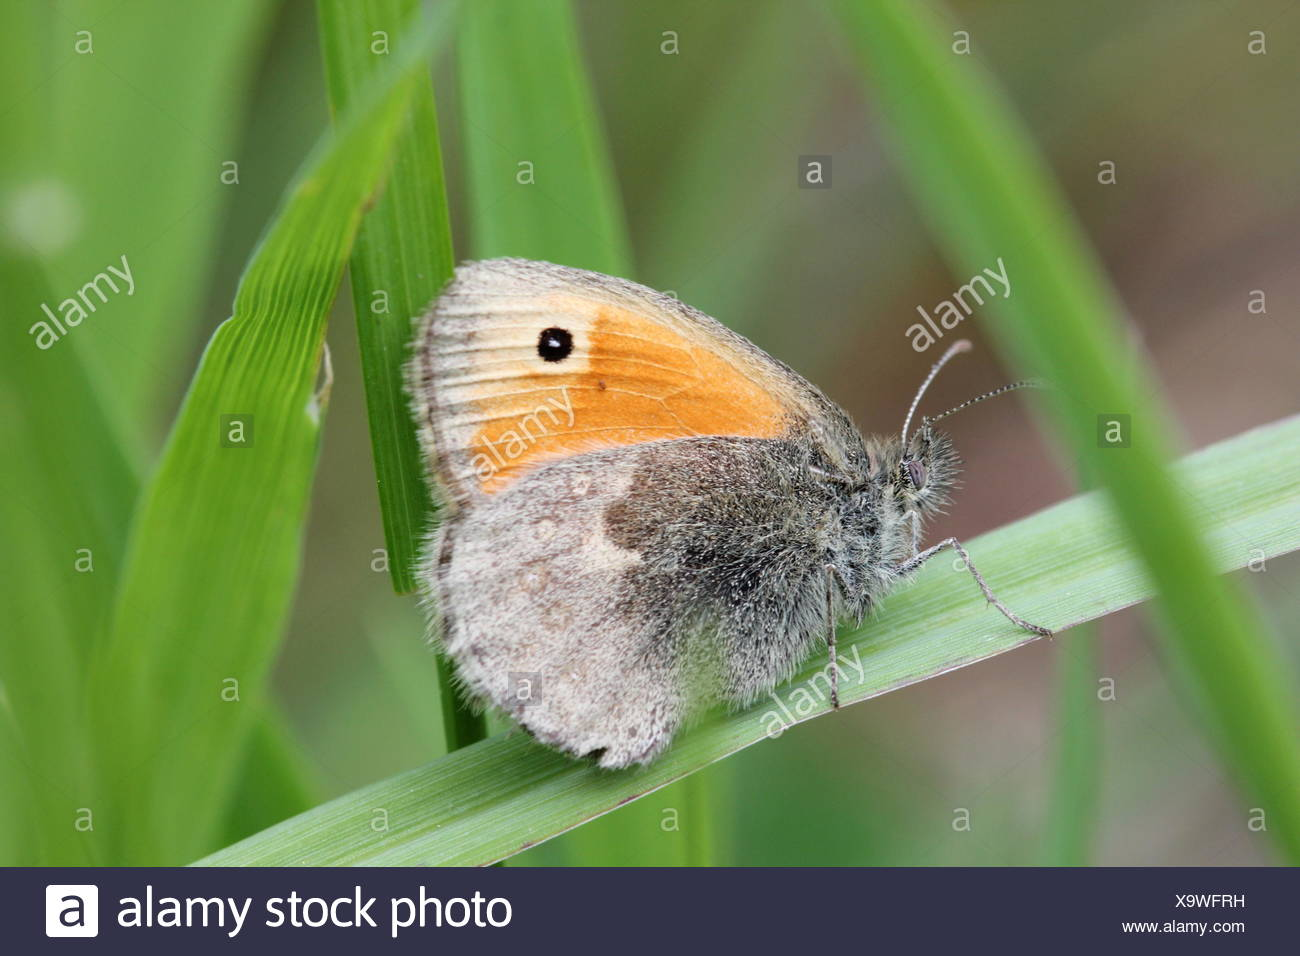 Butterfly On Grass Blade - Stock Image